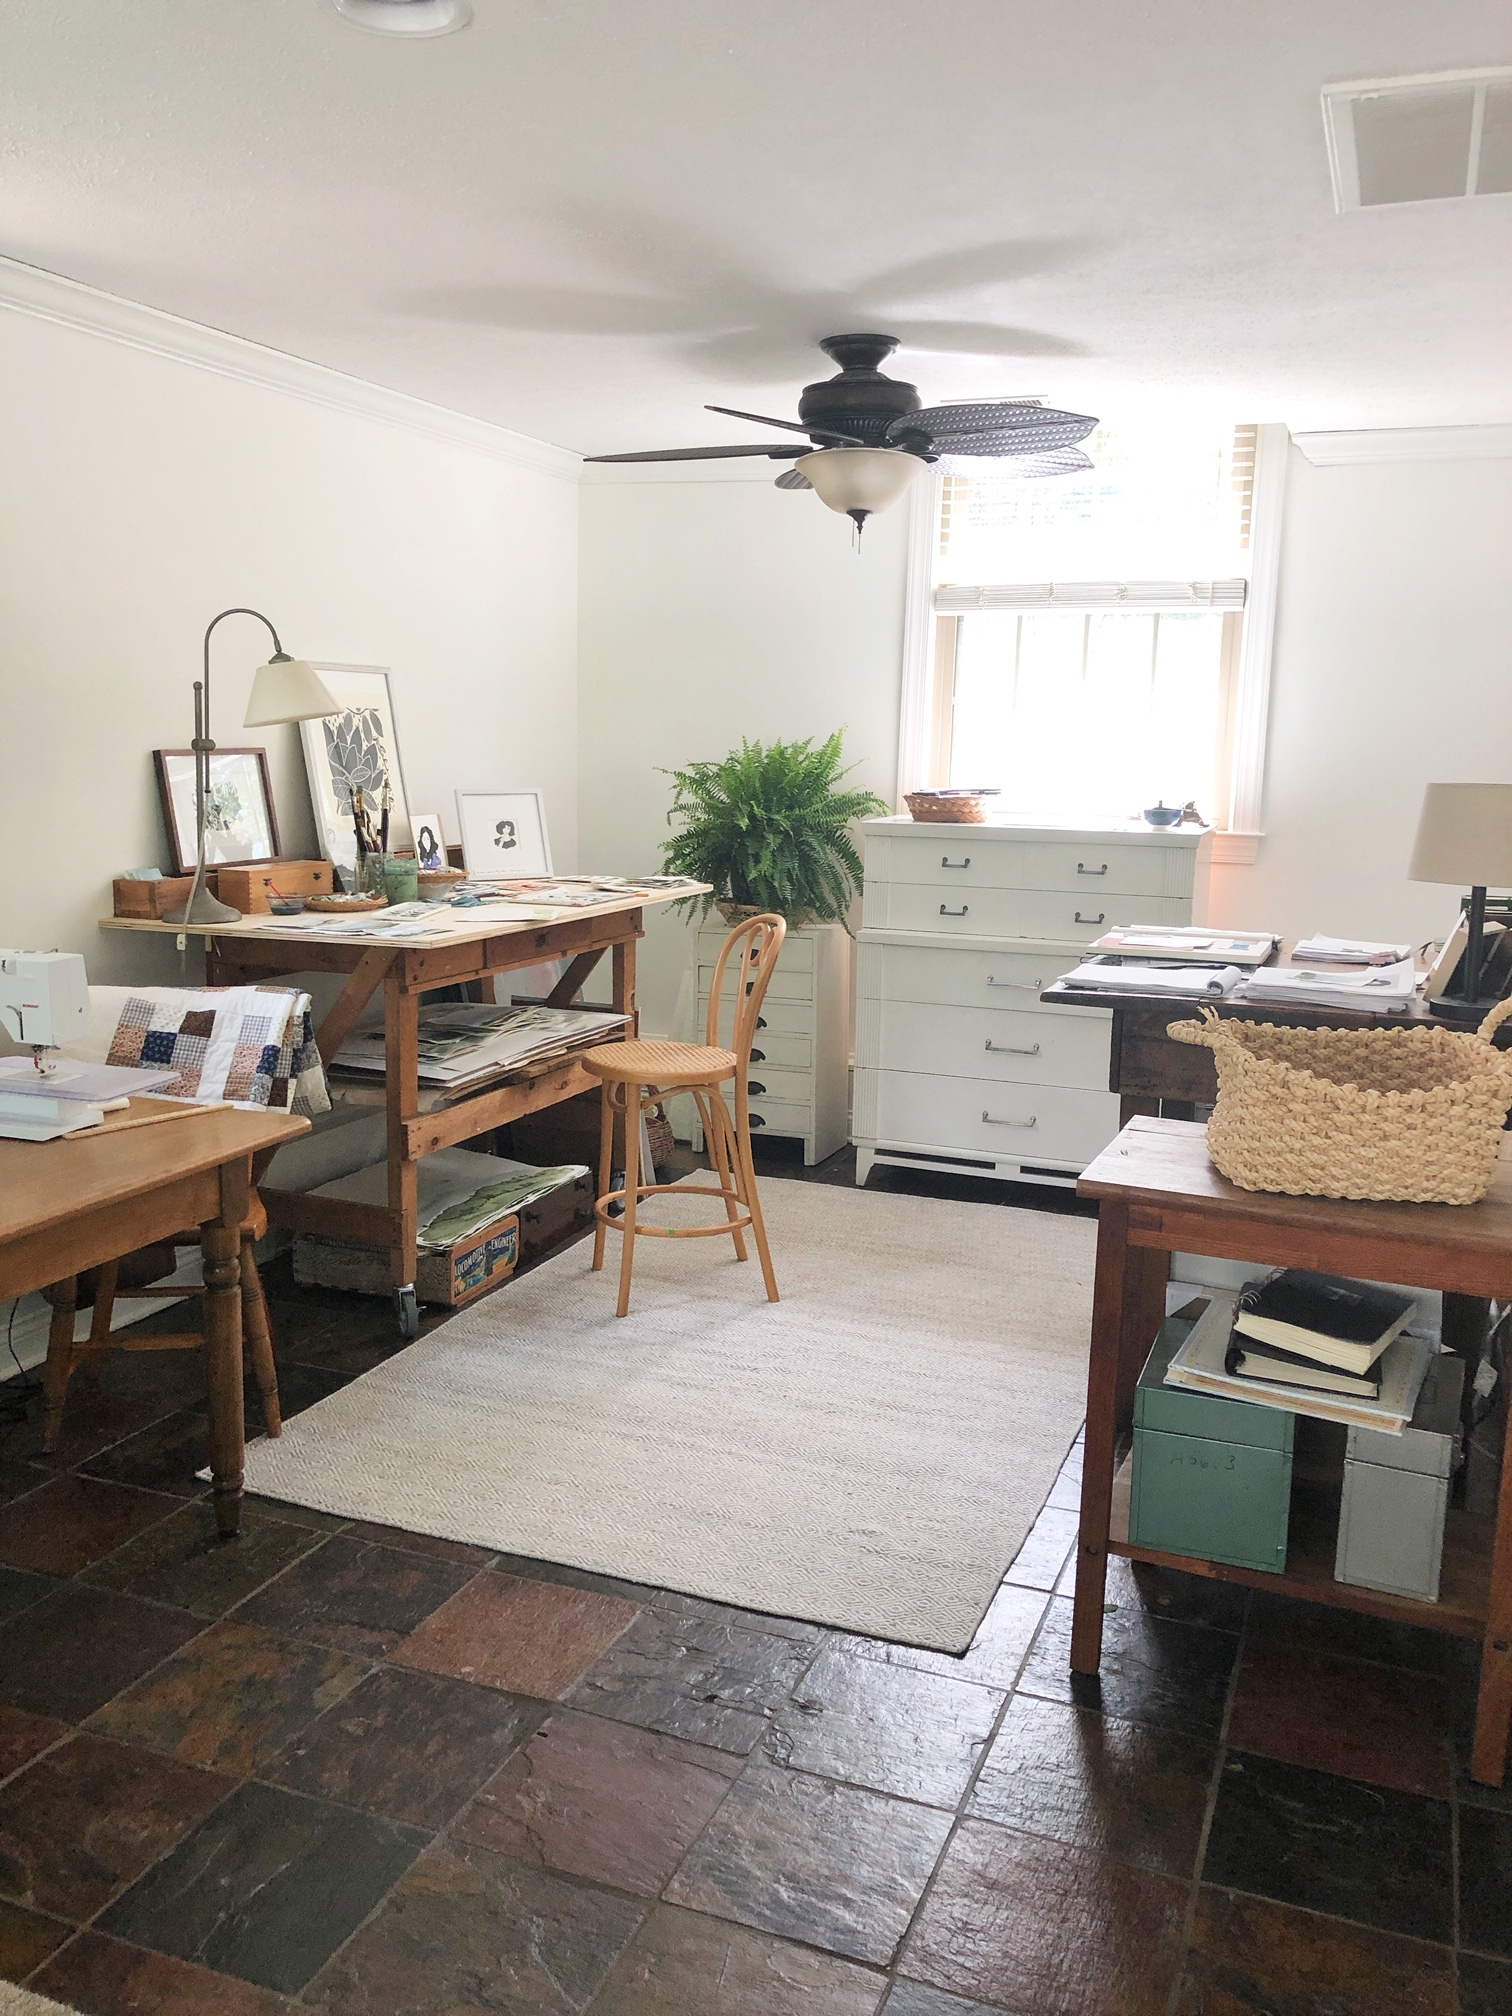 This is my studio… - It's tucked around the corner in our sunroom, the light comes in all day, and I slip in and out as the days allow and the light moves. I often have multiple projects open and in process and enjoy popping in and adding to them - or letting them lead me to other ideas!